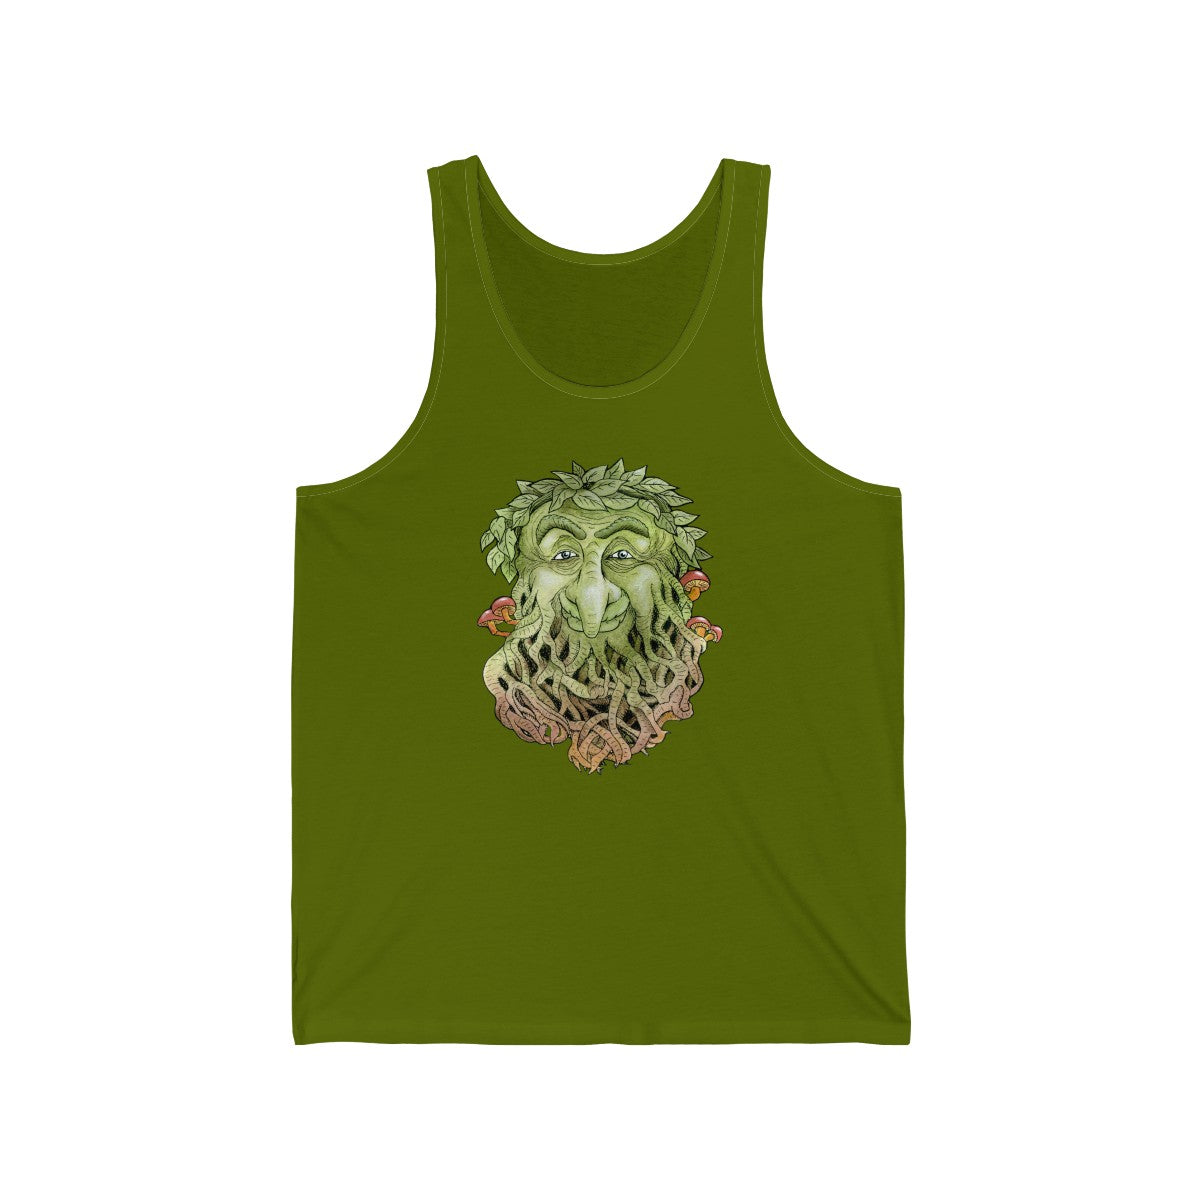 Greenman Unisex Jersey Tank Top in Leaf Green color